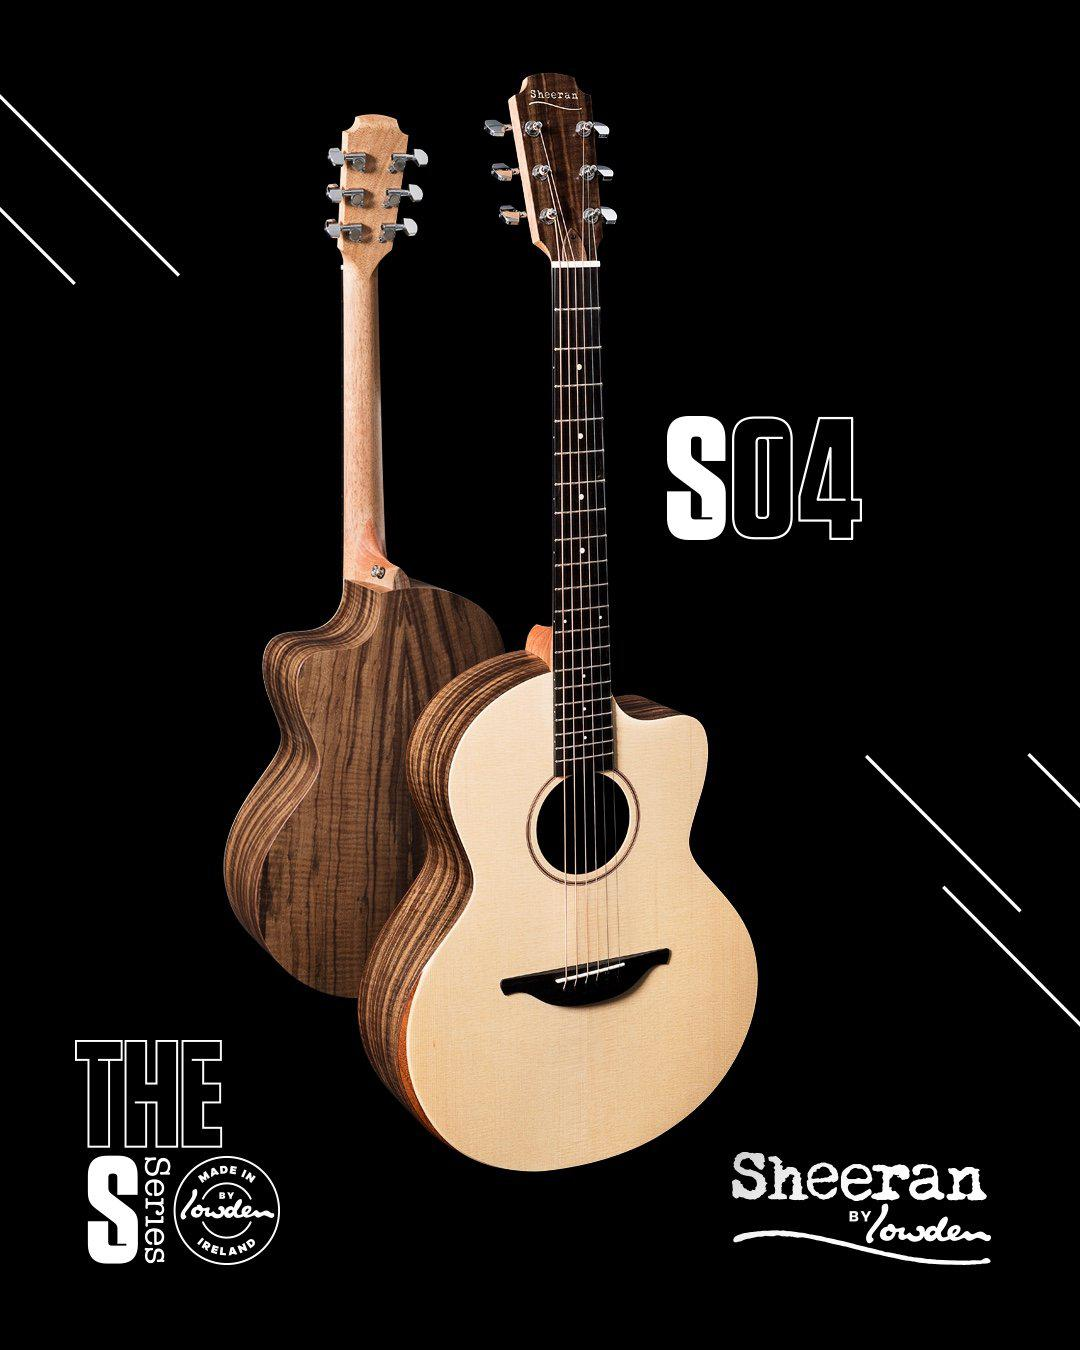 Lowden Sheeran S4 Cutaway Model with Bevel and Pick Up In Stock! #4157 - Lowden Guitars - Heartbreaker Guitars